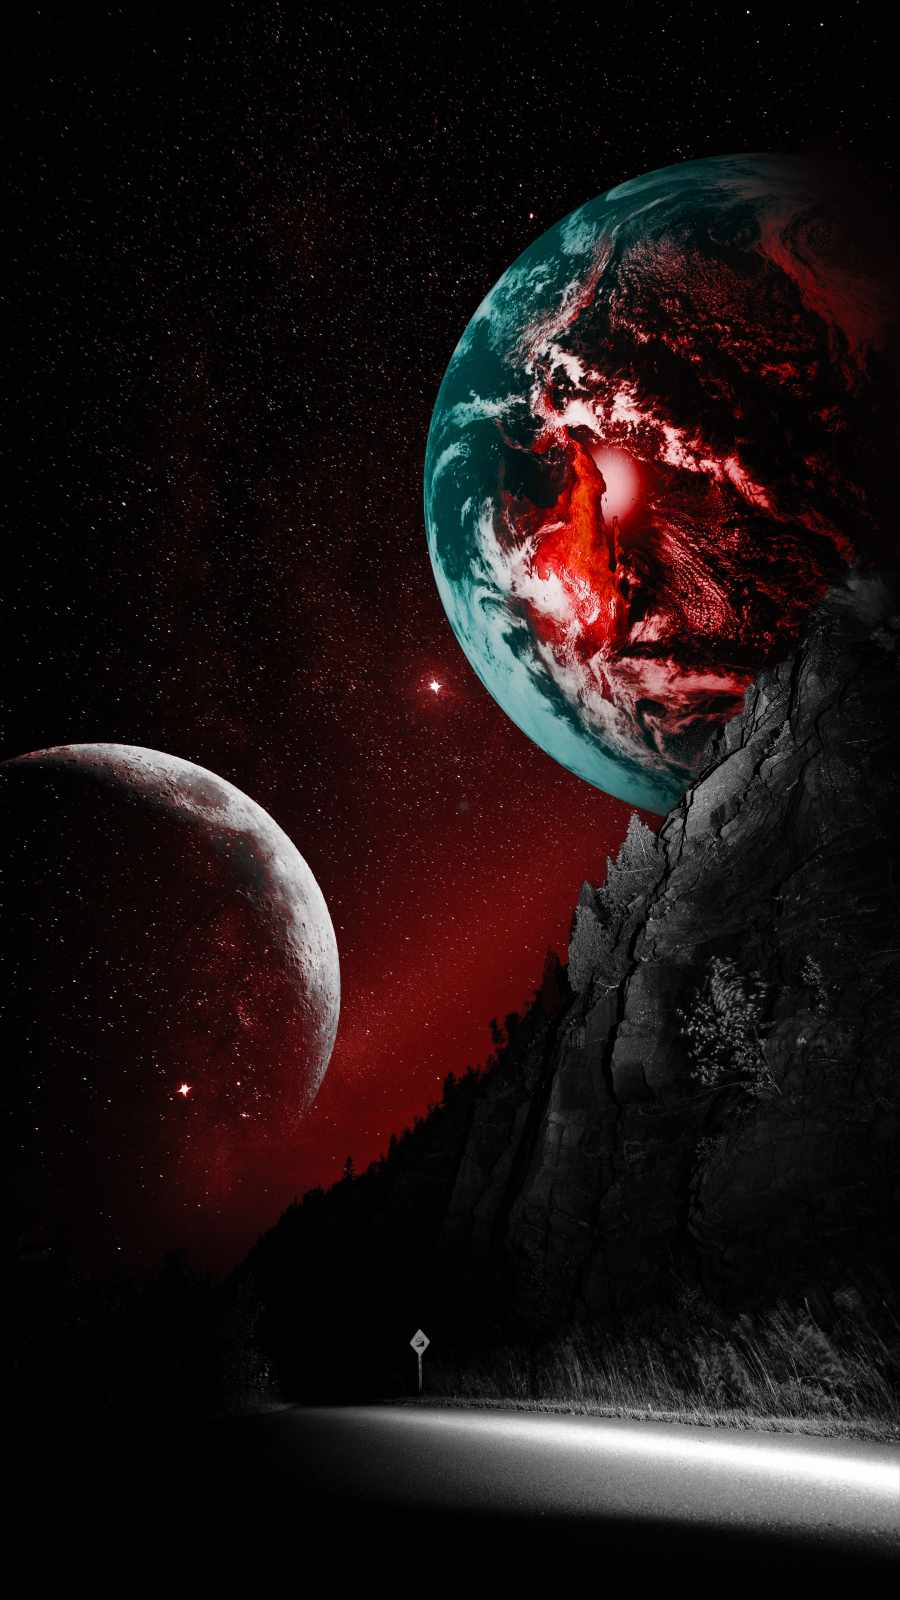 Red Planet from Earth